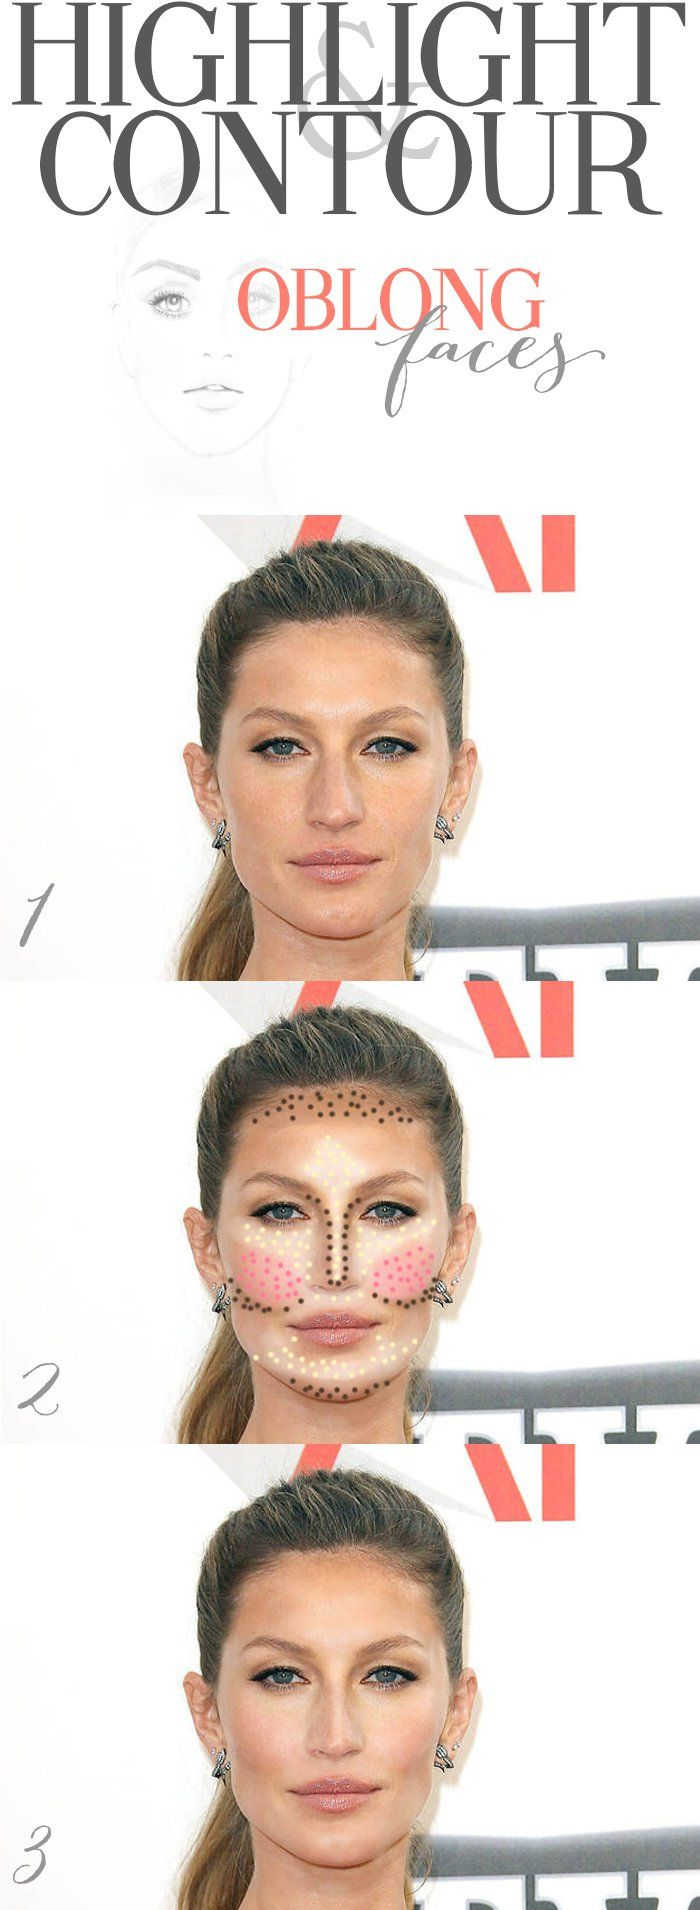 Highlighting and contouring for oblong faces. Long face